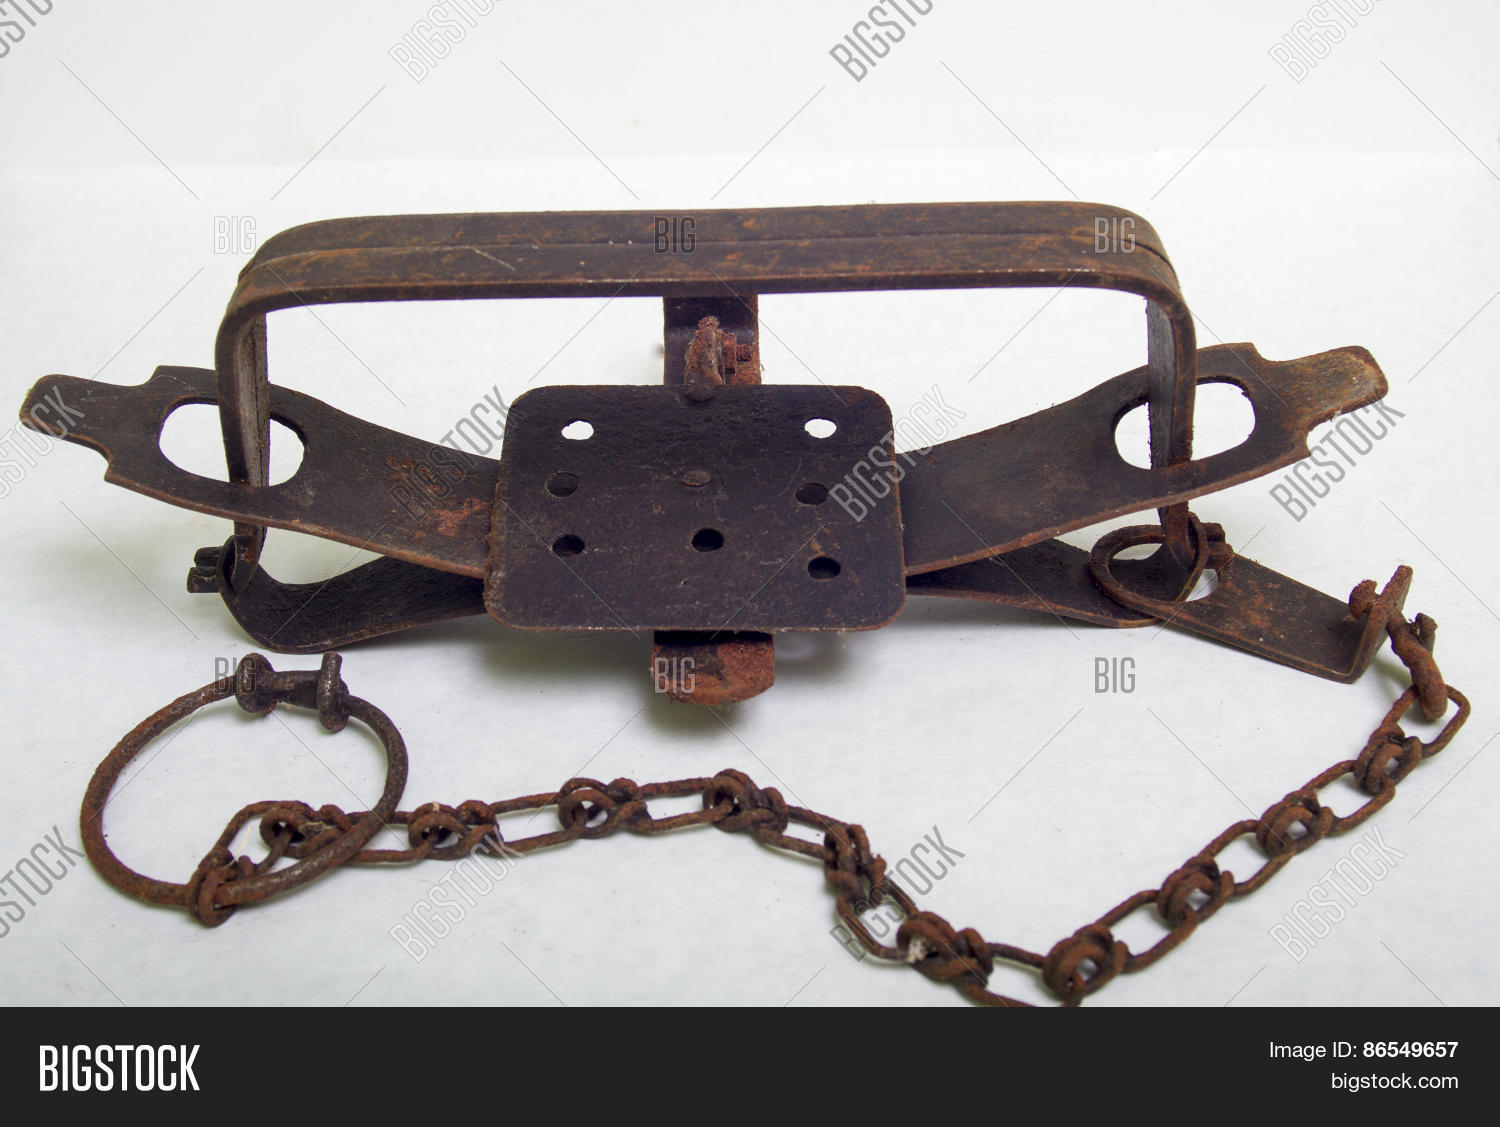 rare large old leg hold trap - HD 1500×1127